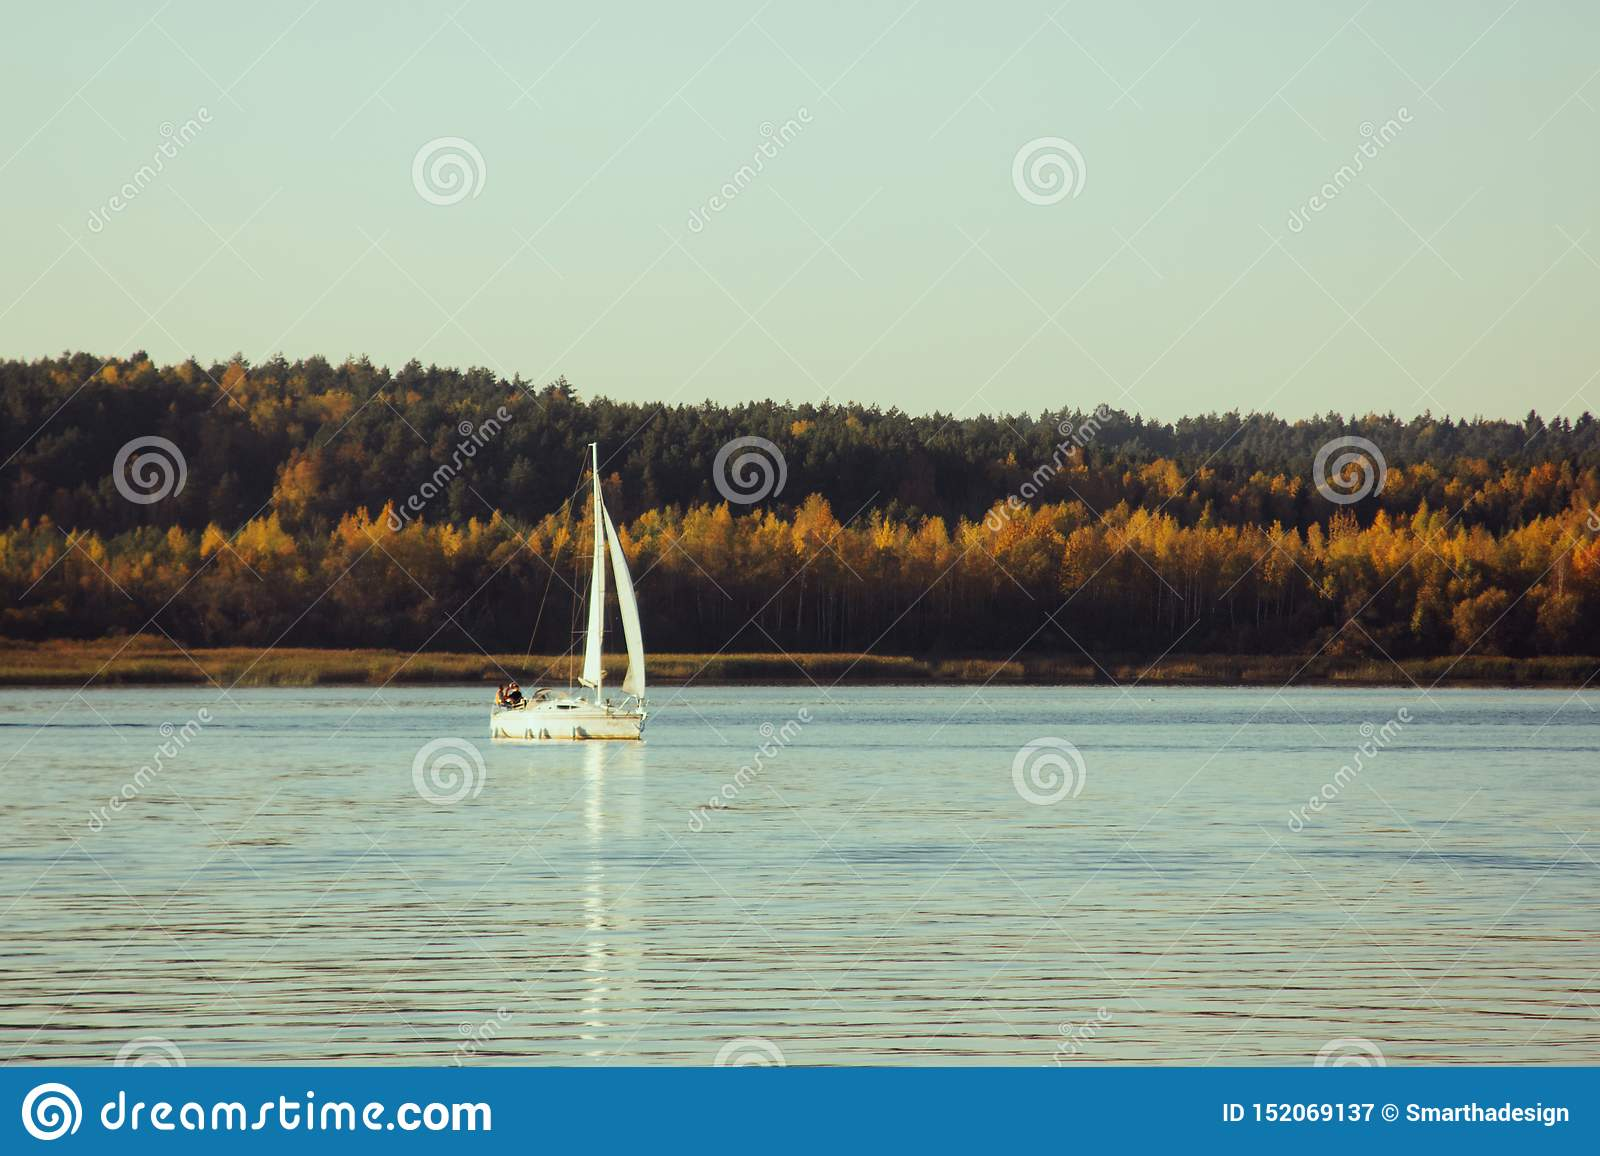 Beautiful lake landscape, yacht, and sunset. Blue waves, boat and horizon line on water. Beautiful background